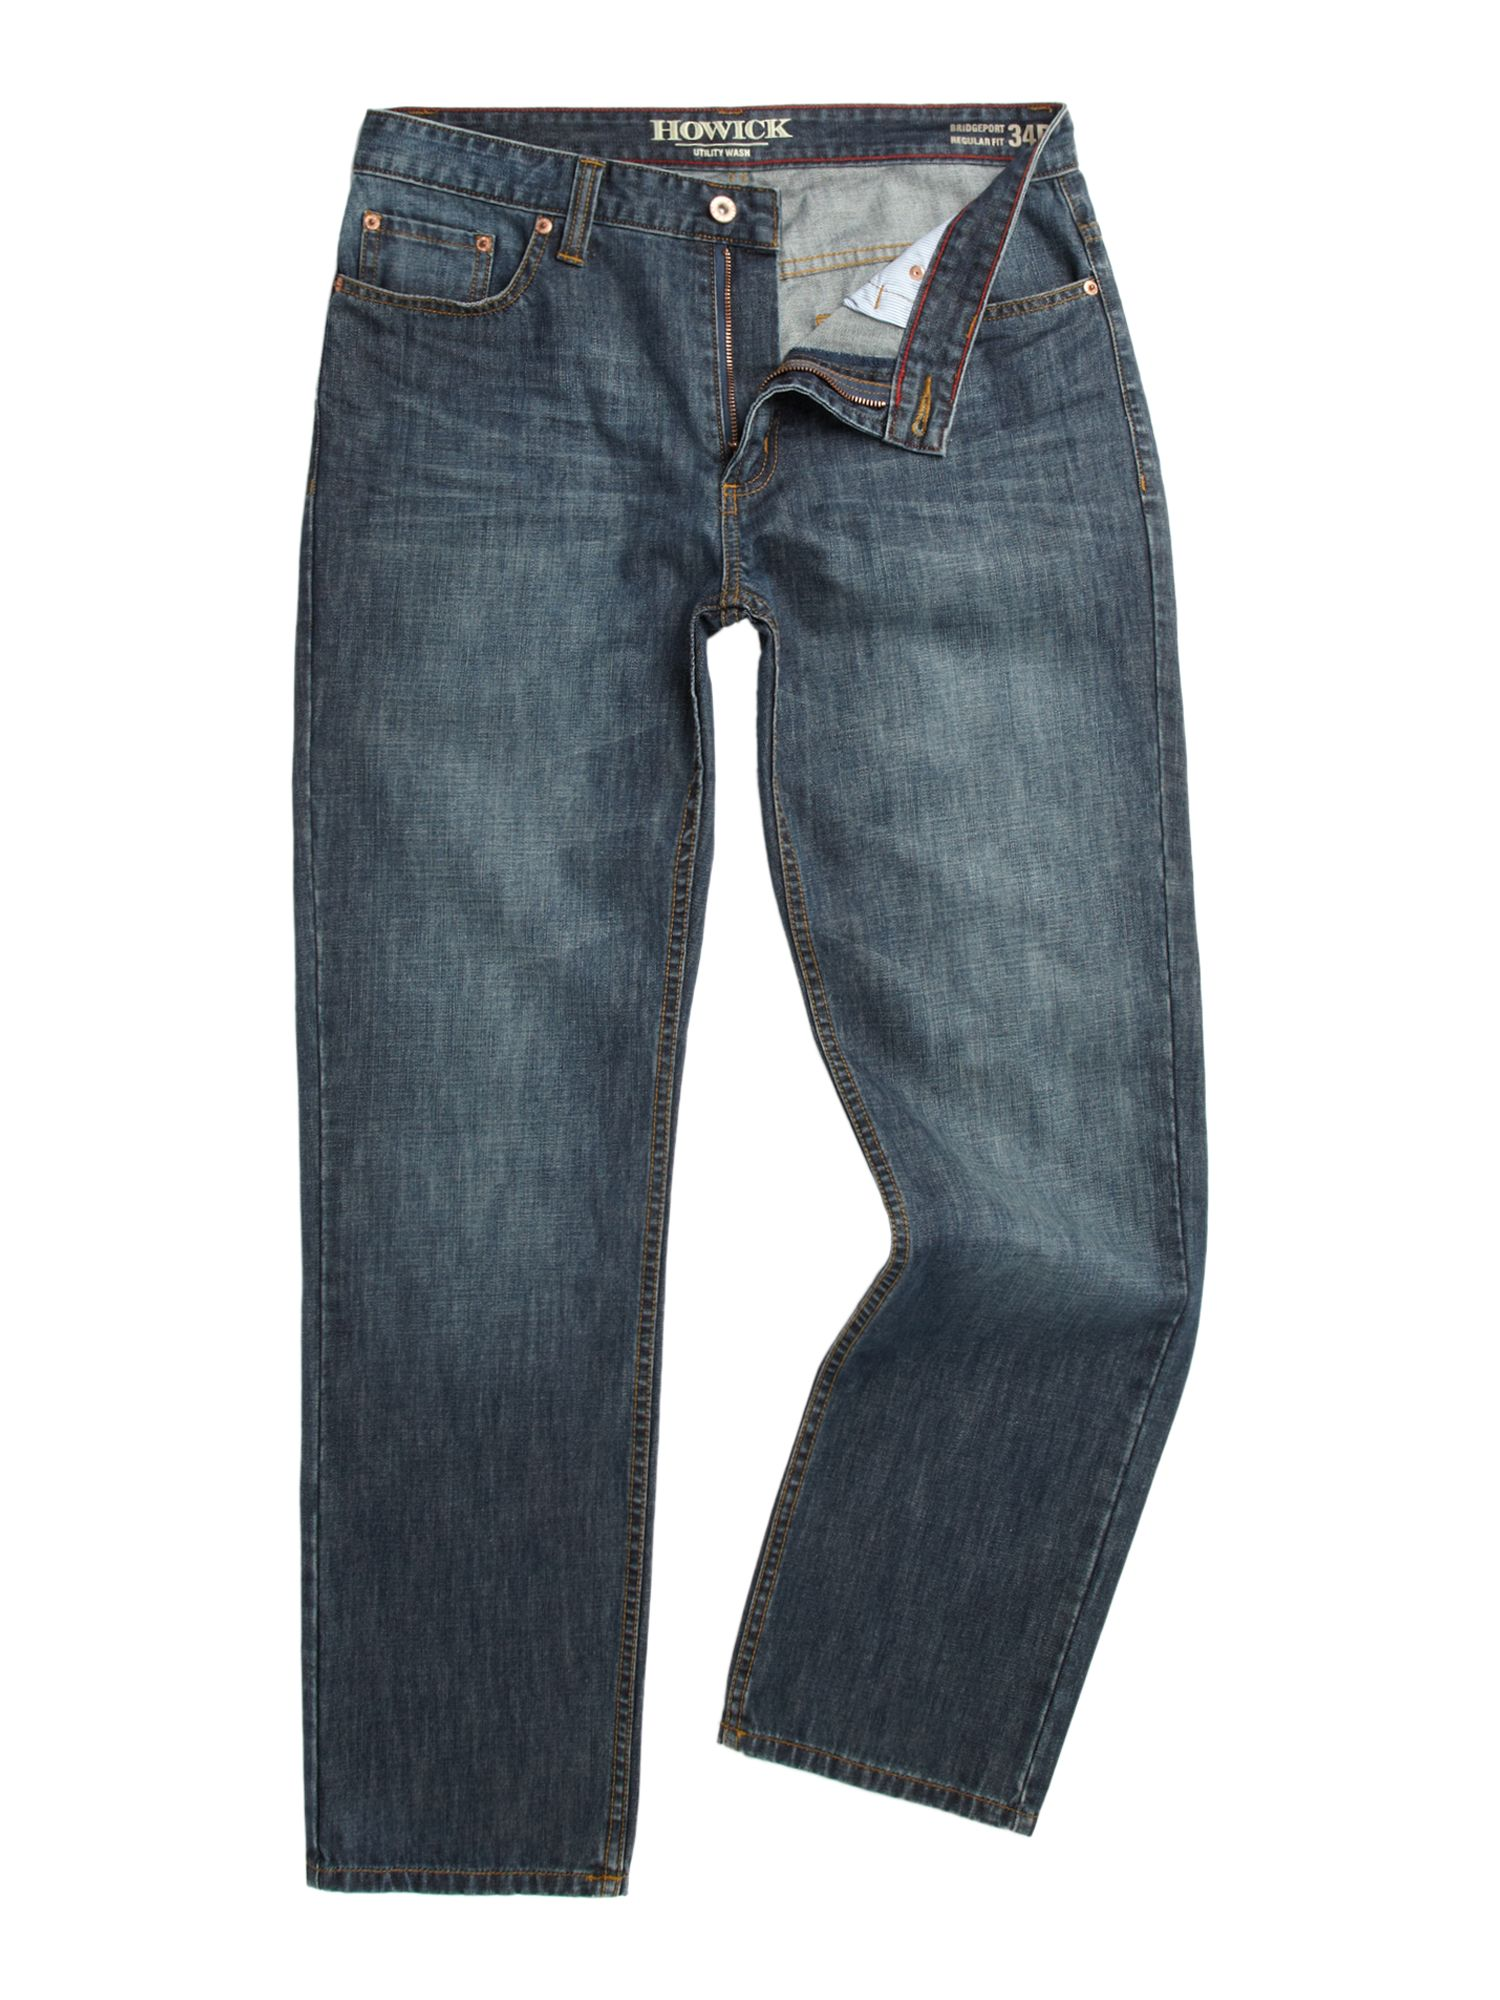 Bridgeport five pocket washed jeans